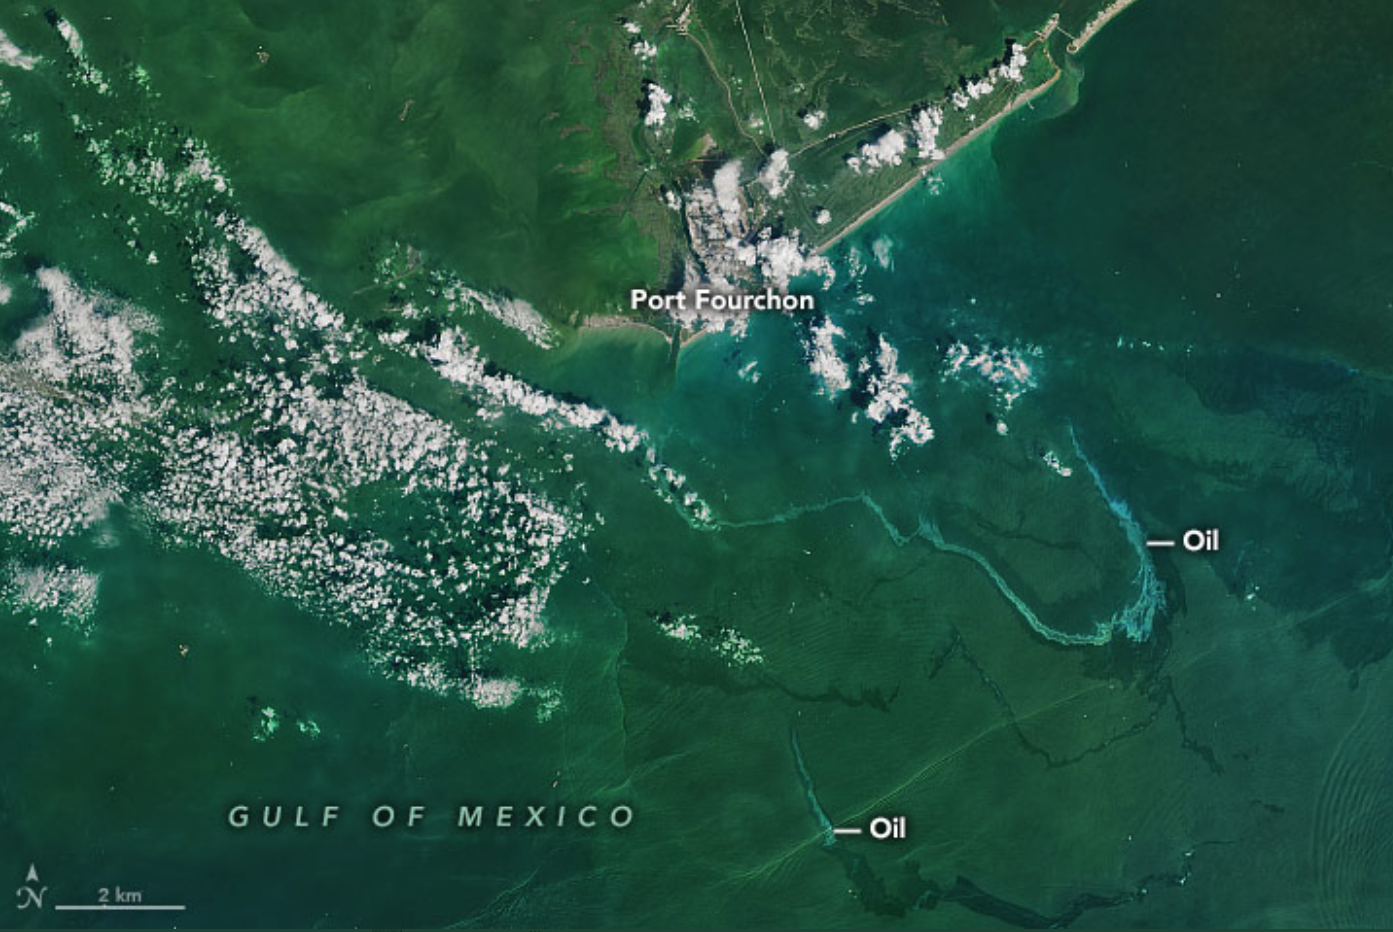 Hurricane Ida left a trail of oil. Federal and state agencies and private companies are working to find and contain leaks in the Gulf of Mexico.